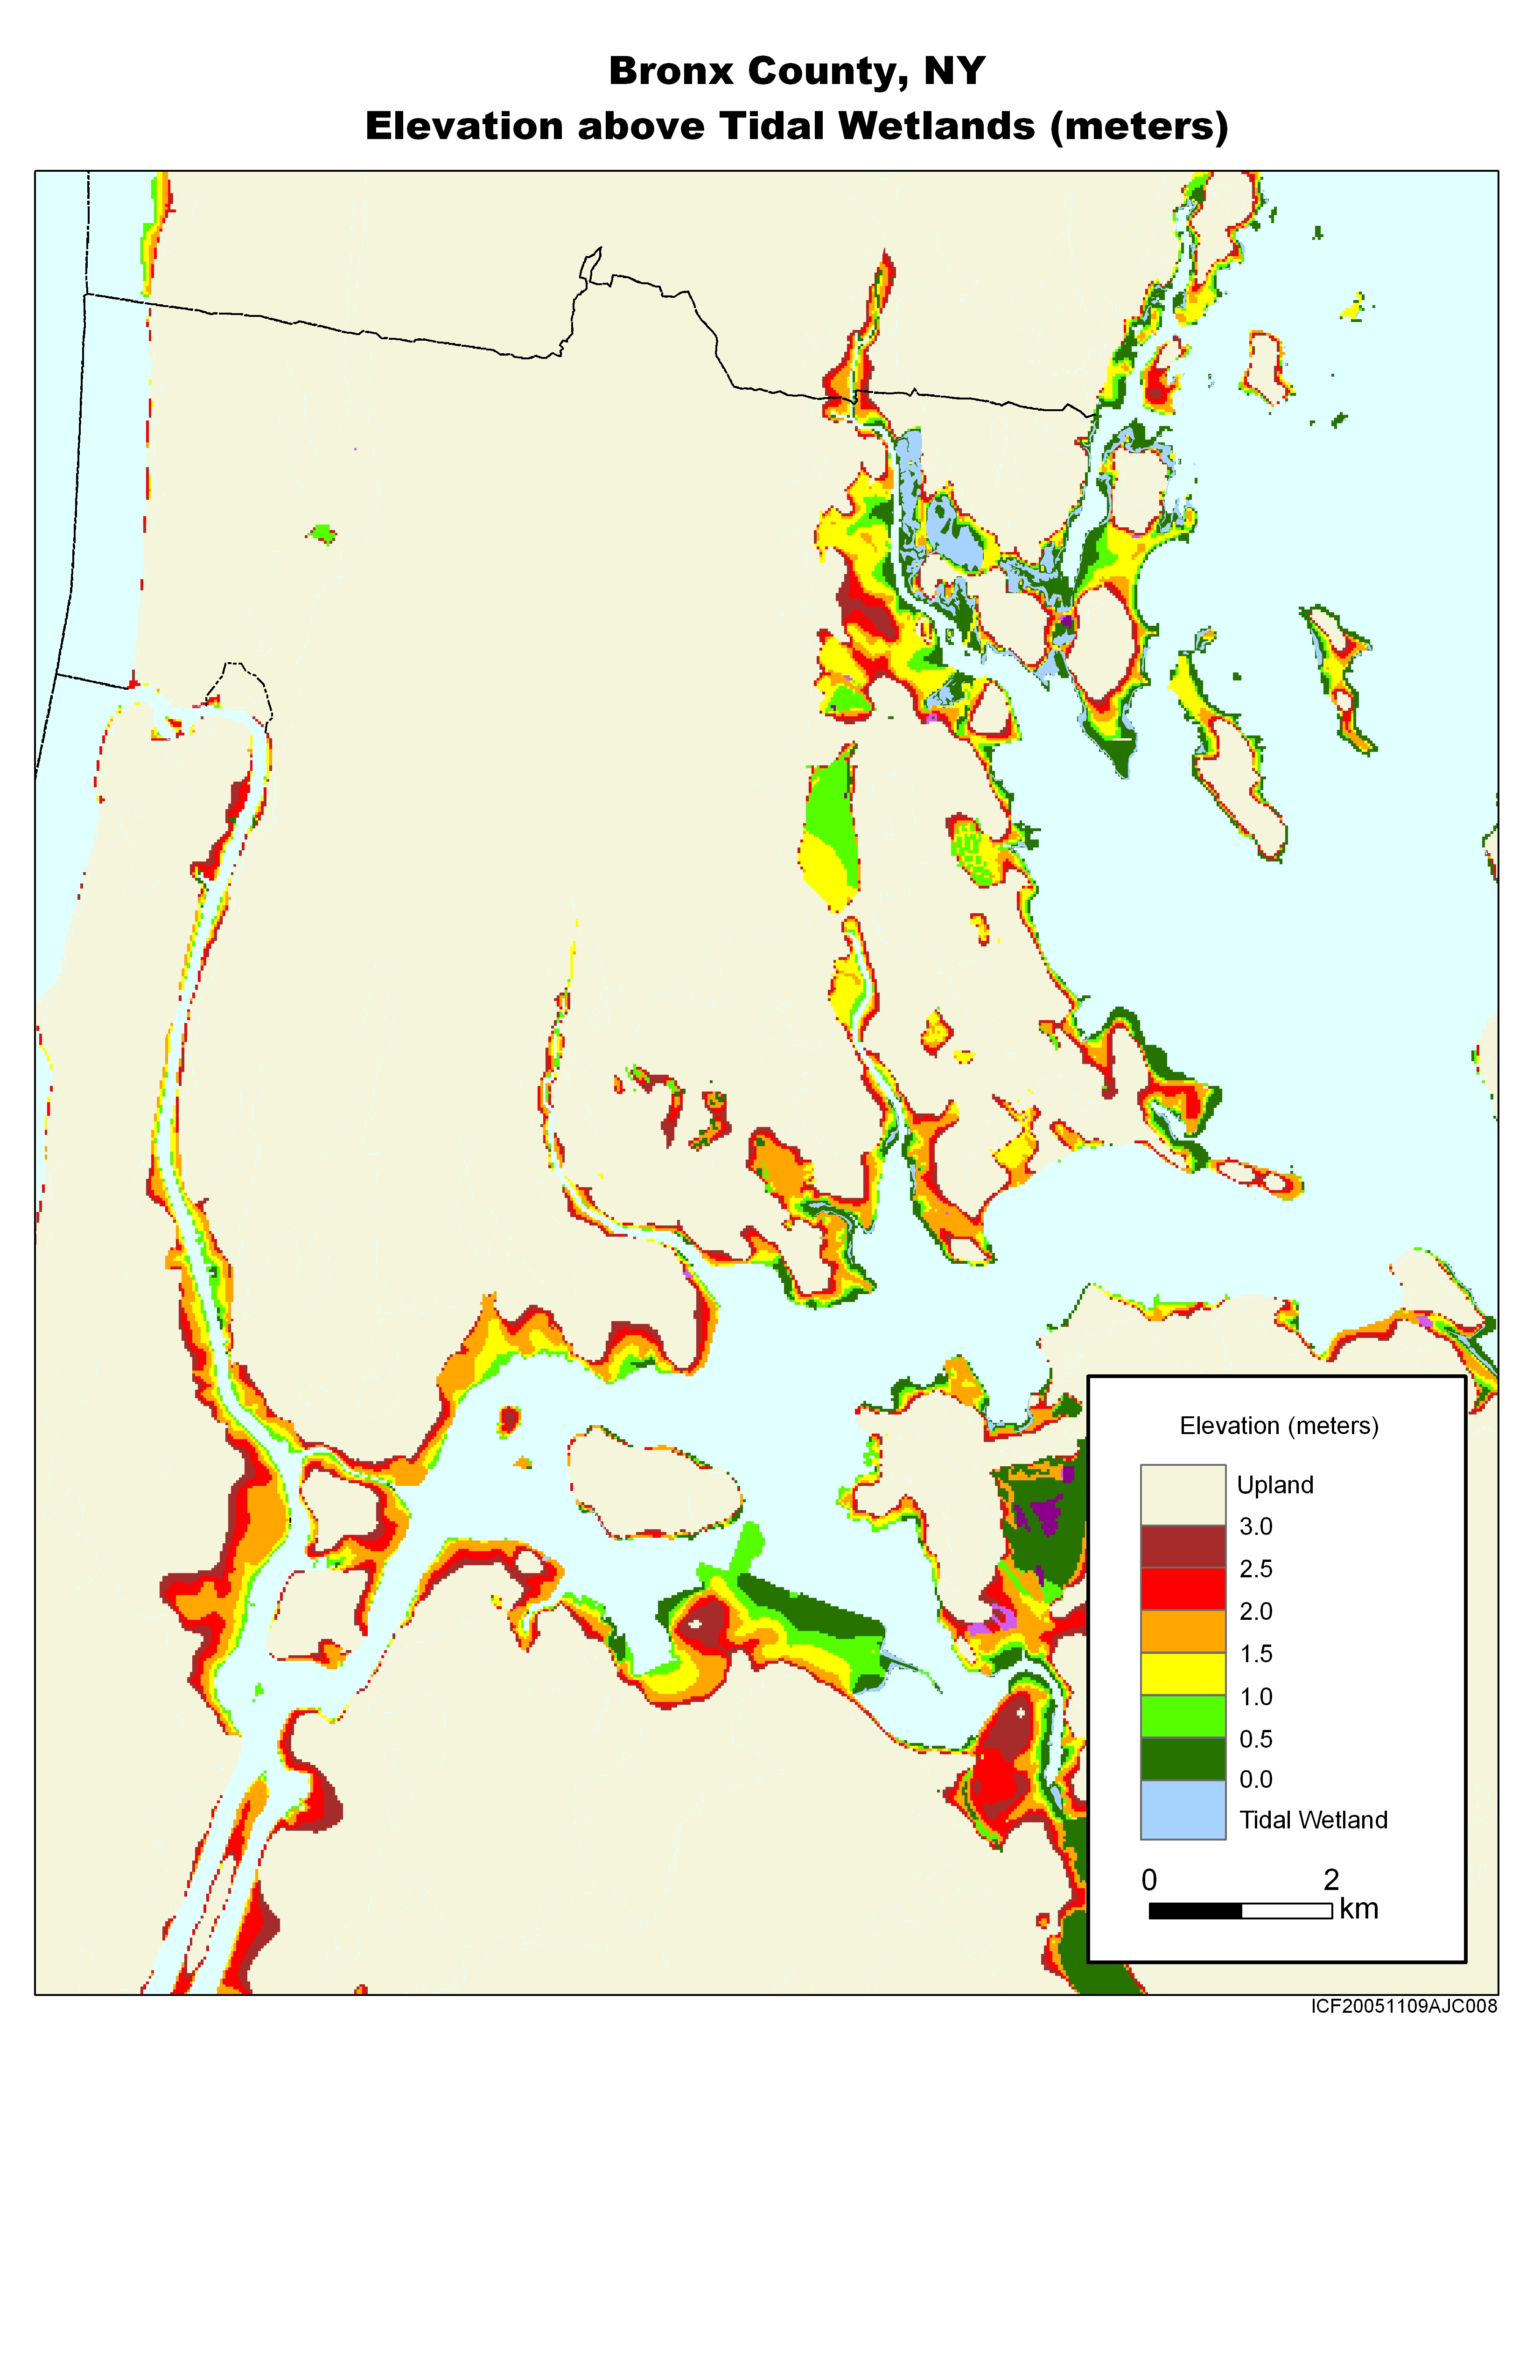 Nys Elevation Map.More Sea Level Rise Maps For New York State